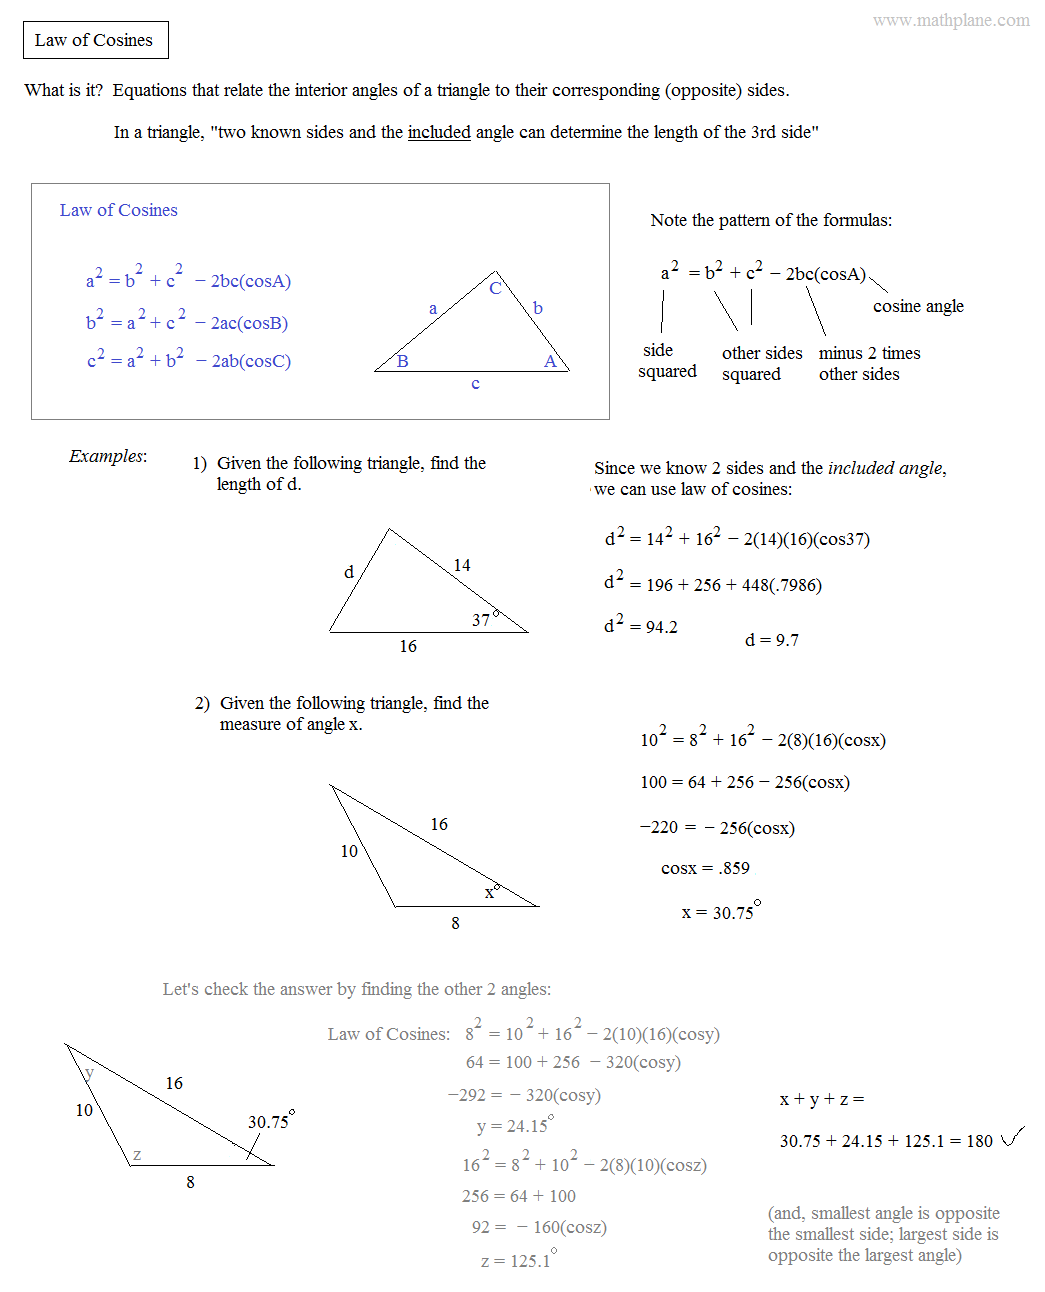 ... geometry theorems triangle area formula congruent triangles triangle